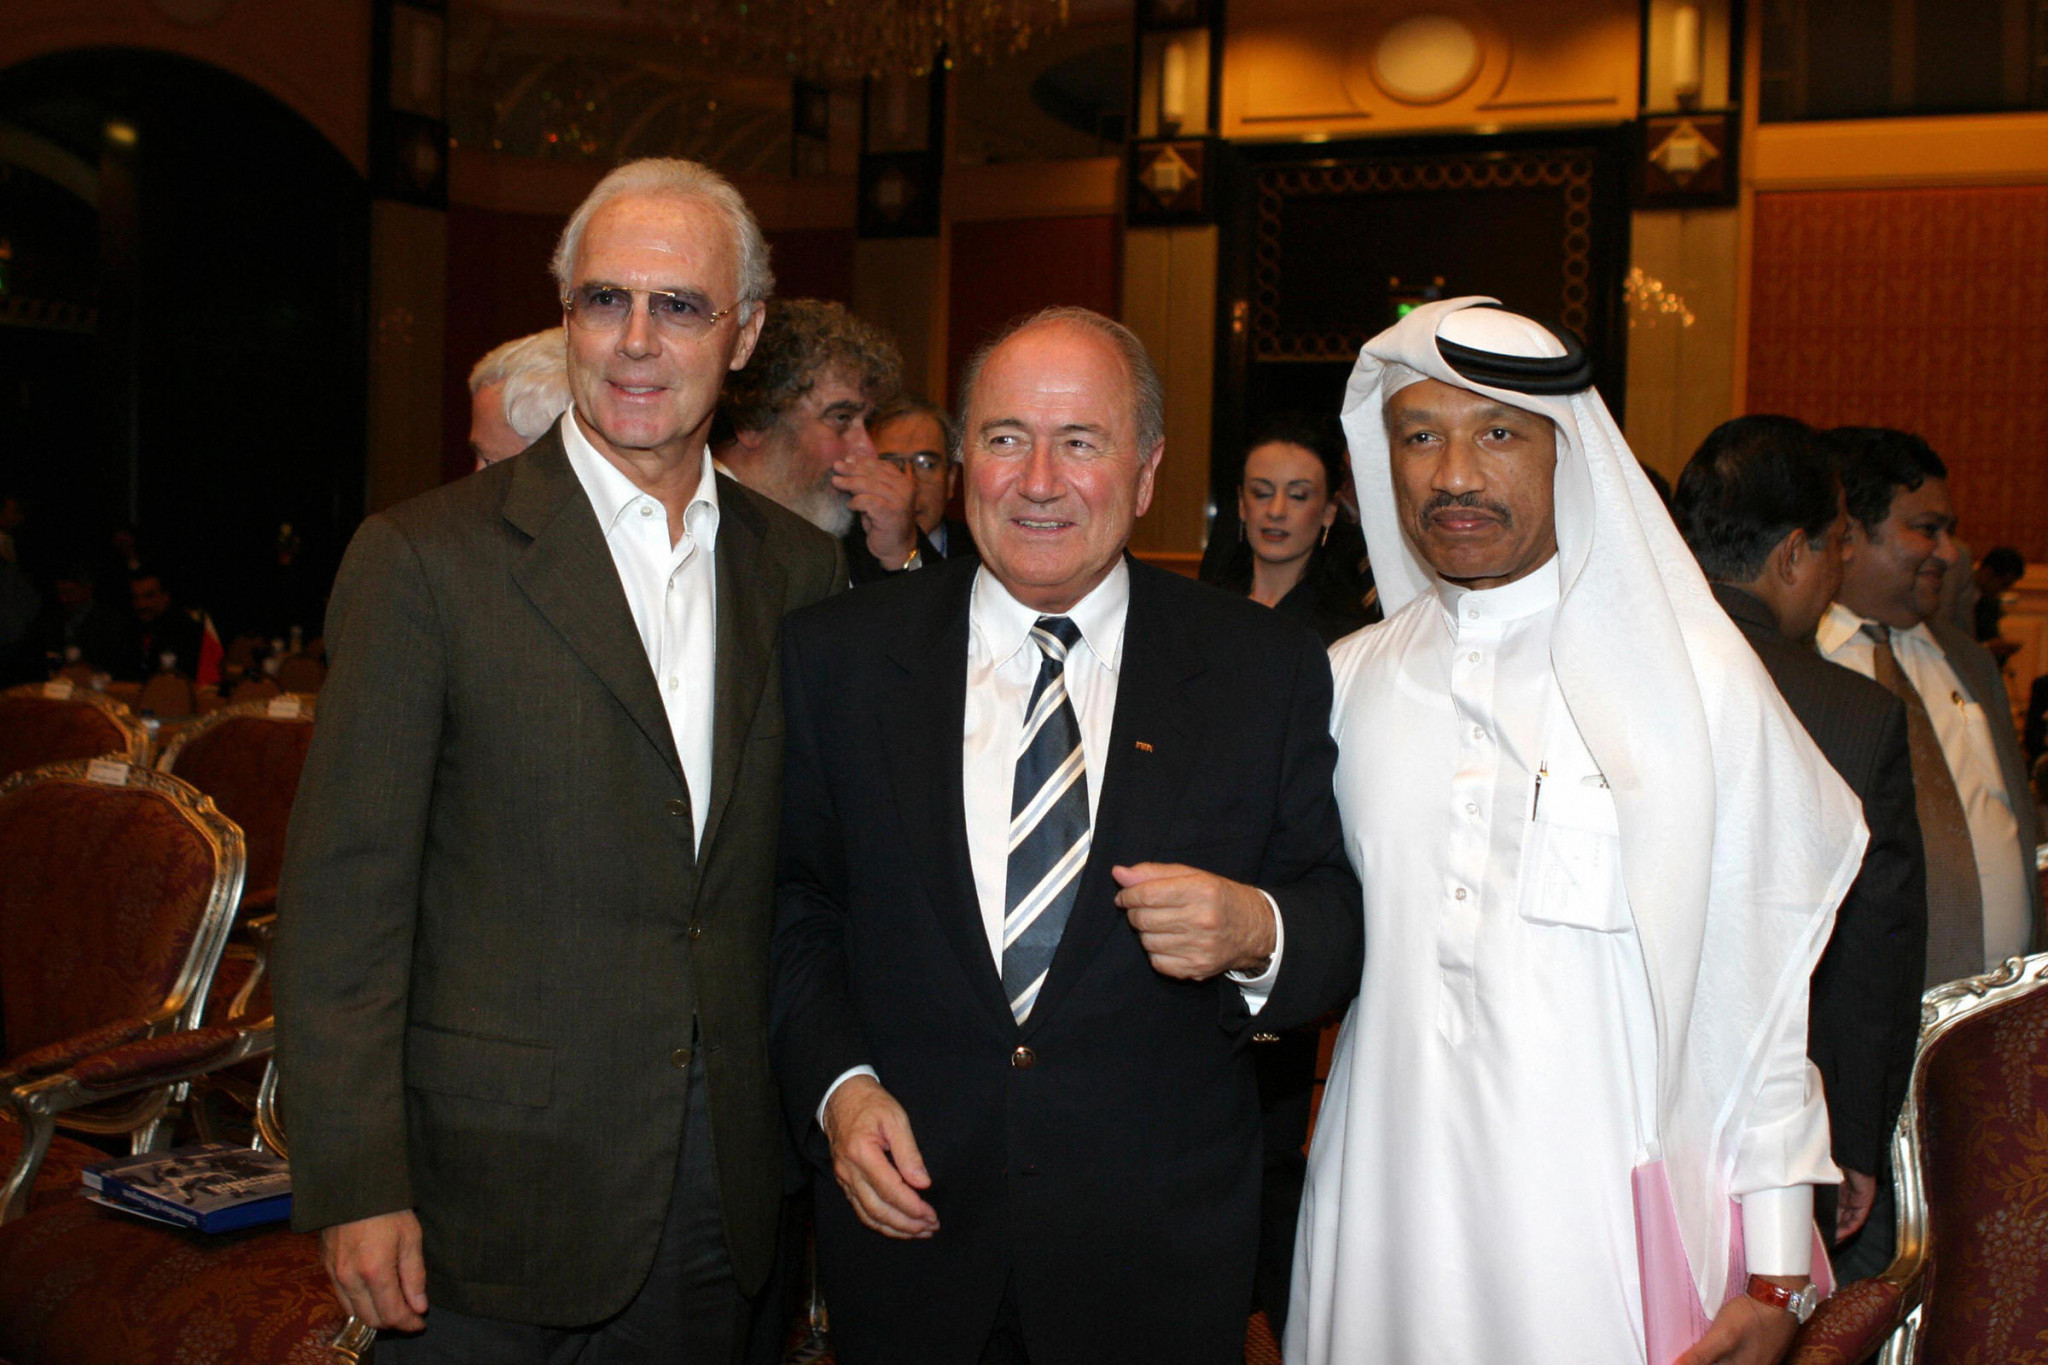 Franz Beckenbauer, left, and Mohamed bin Hammam have denied allegations of bribery ©Getty Images